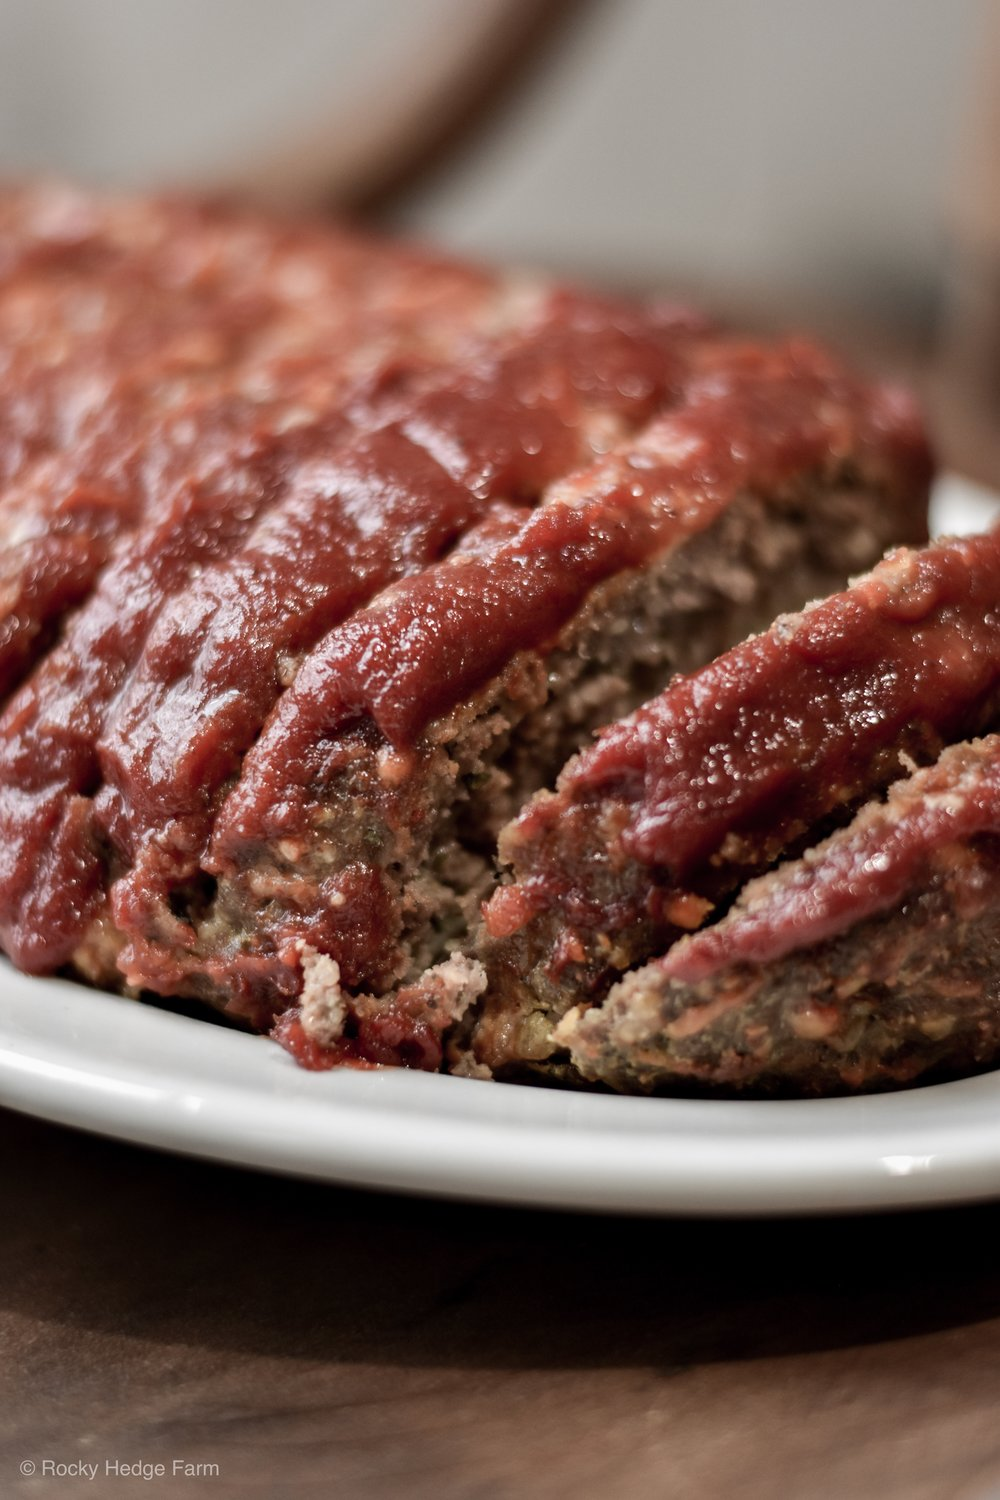 A quick and easy weeknight meal recipe for meatloaf. The best healthy herb and cheese meatloaf. Low-Carb, Sugar-Free | Rocky Hedge Farm